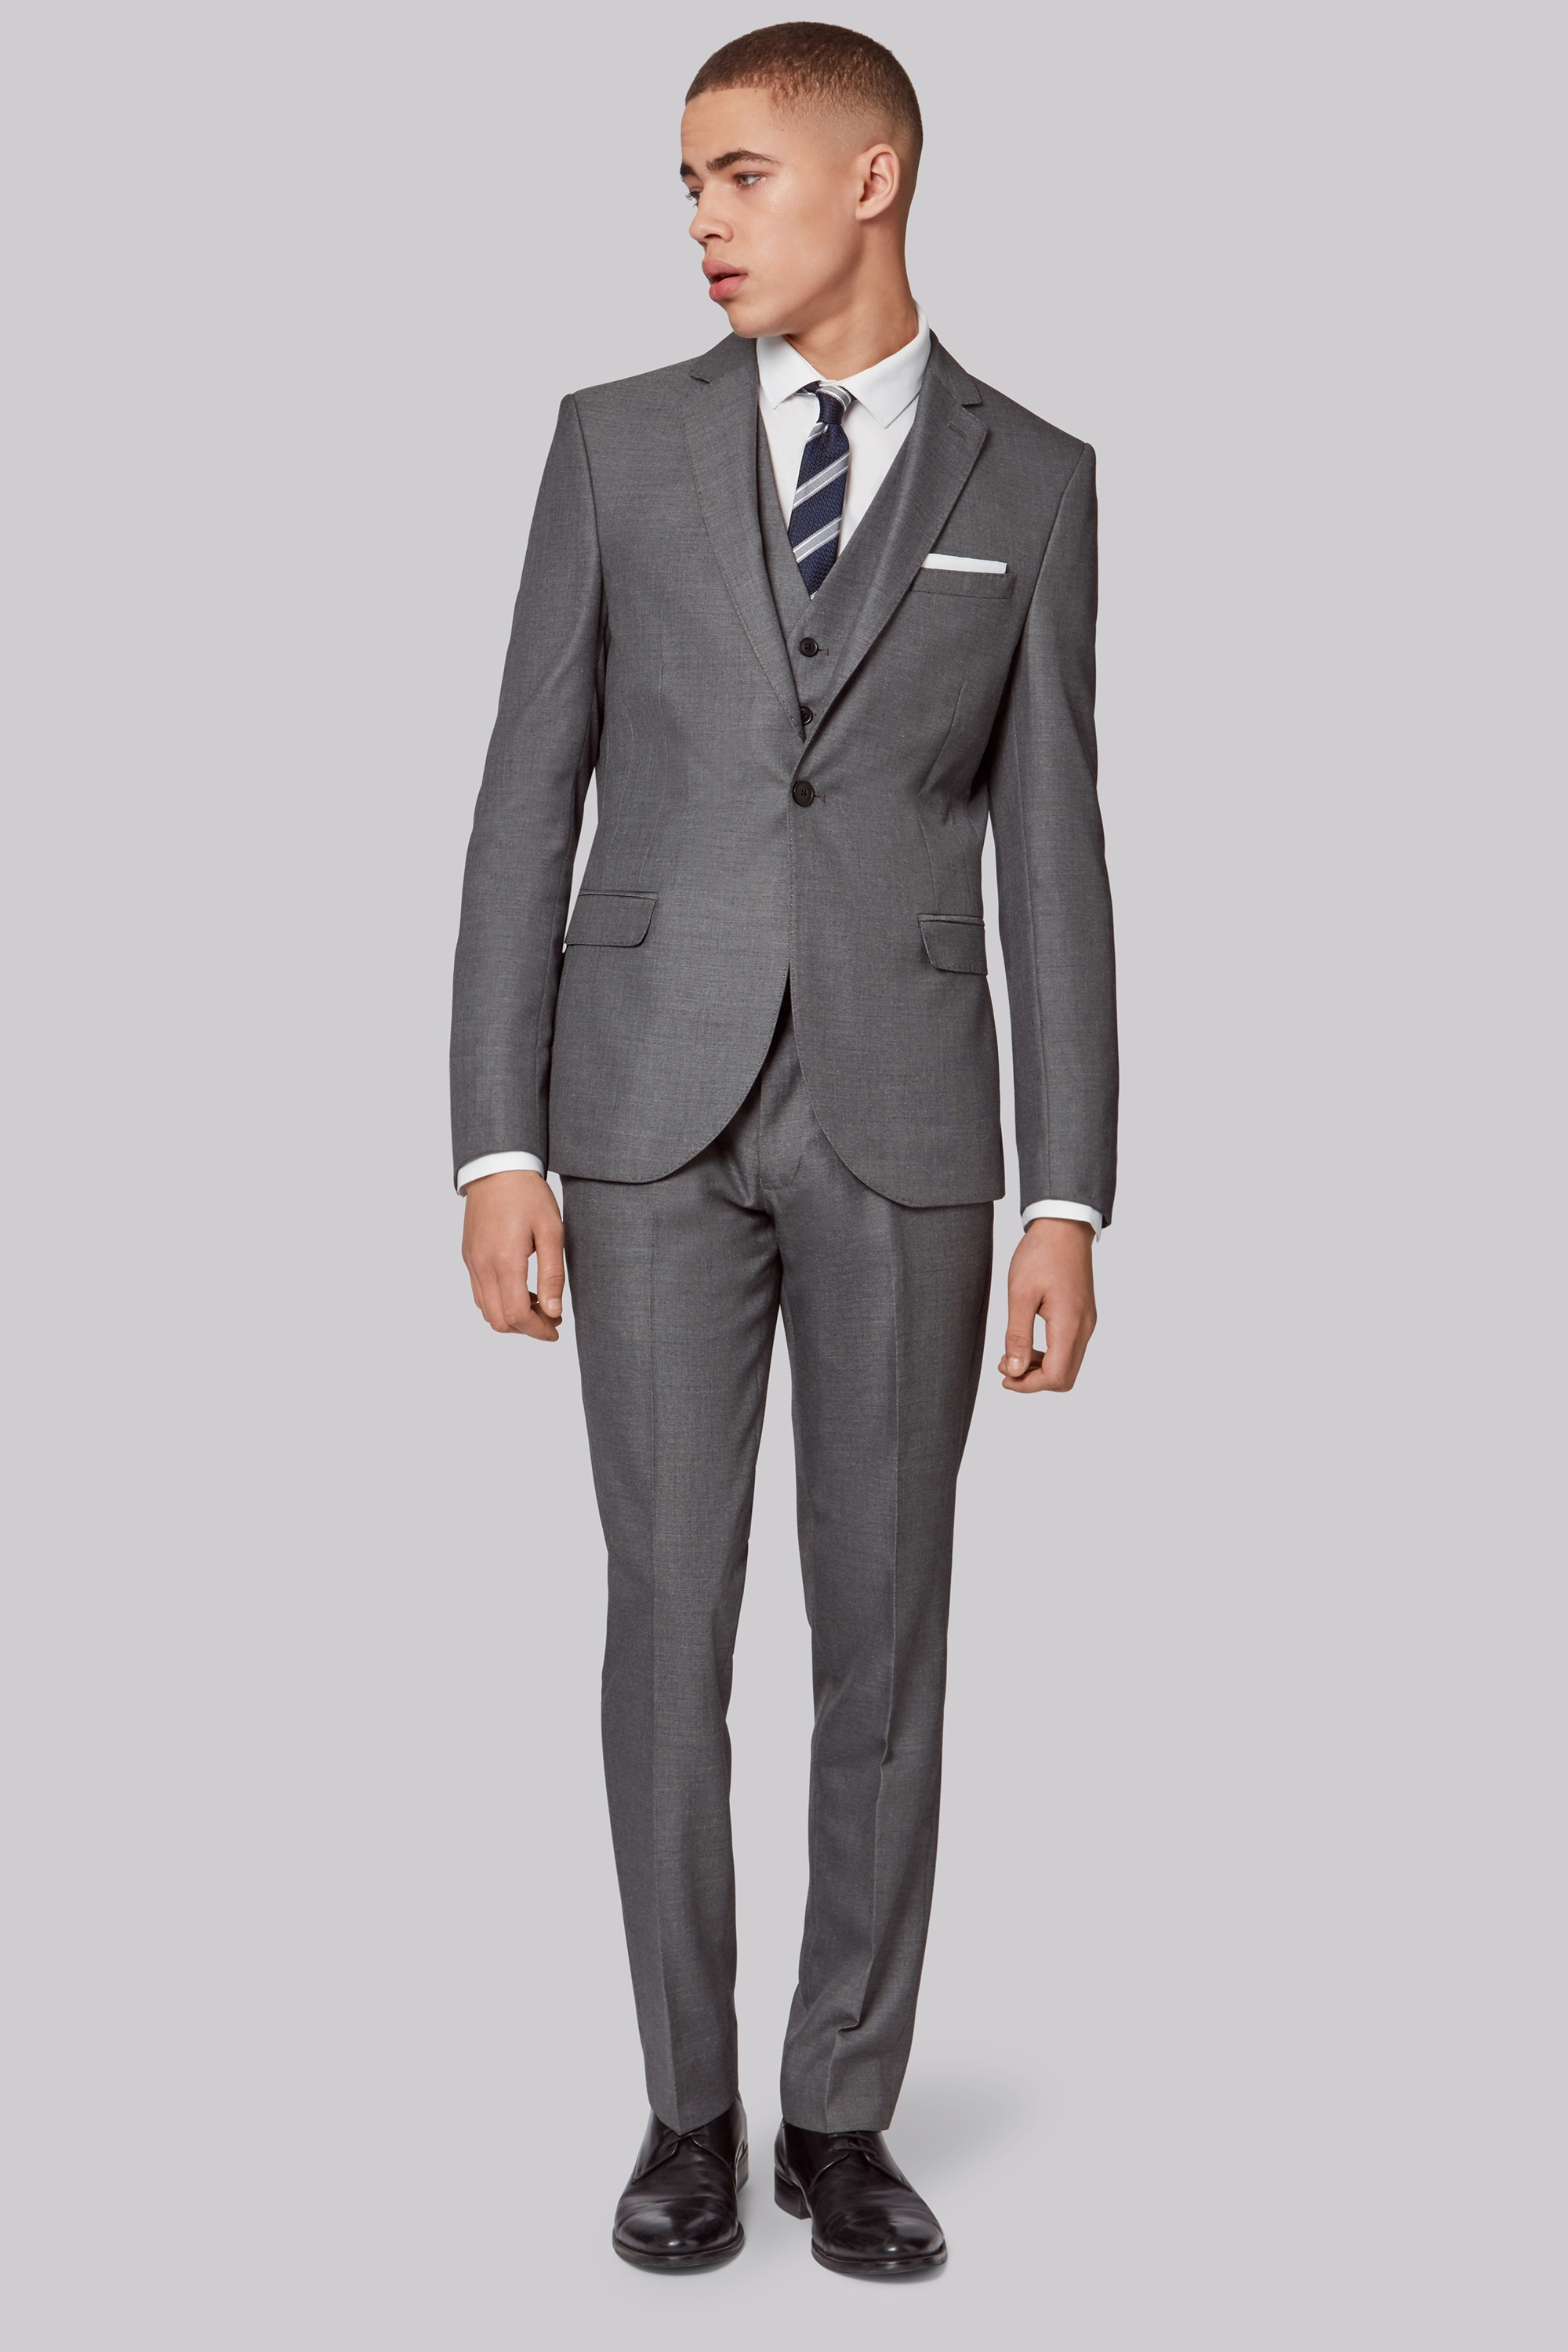 Men's Grey Suits | Shop Online At Moss Bros.